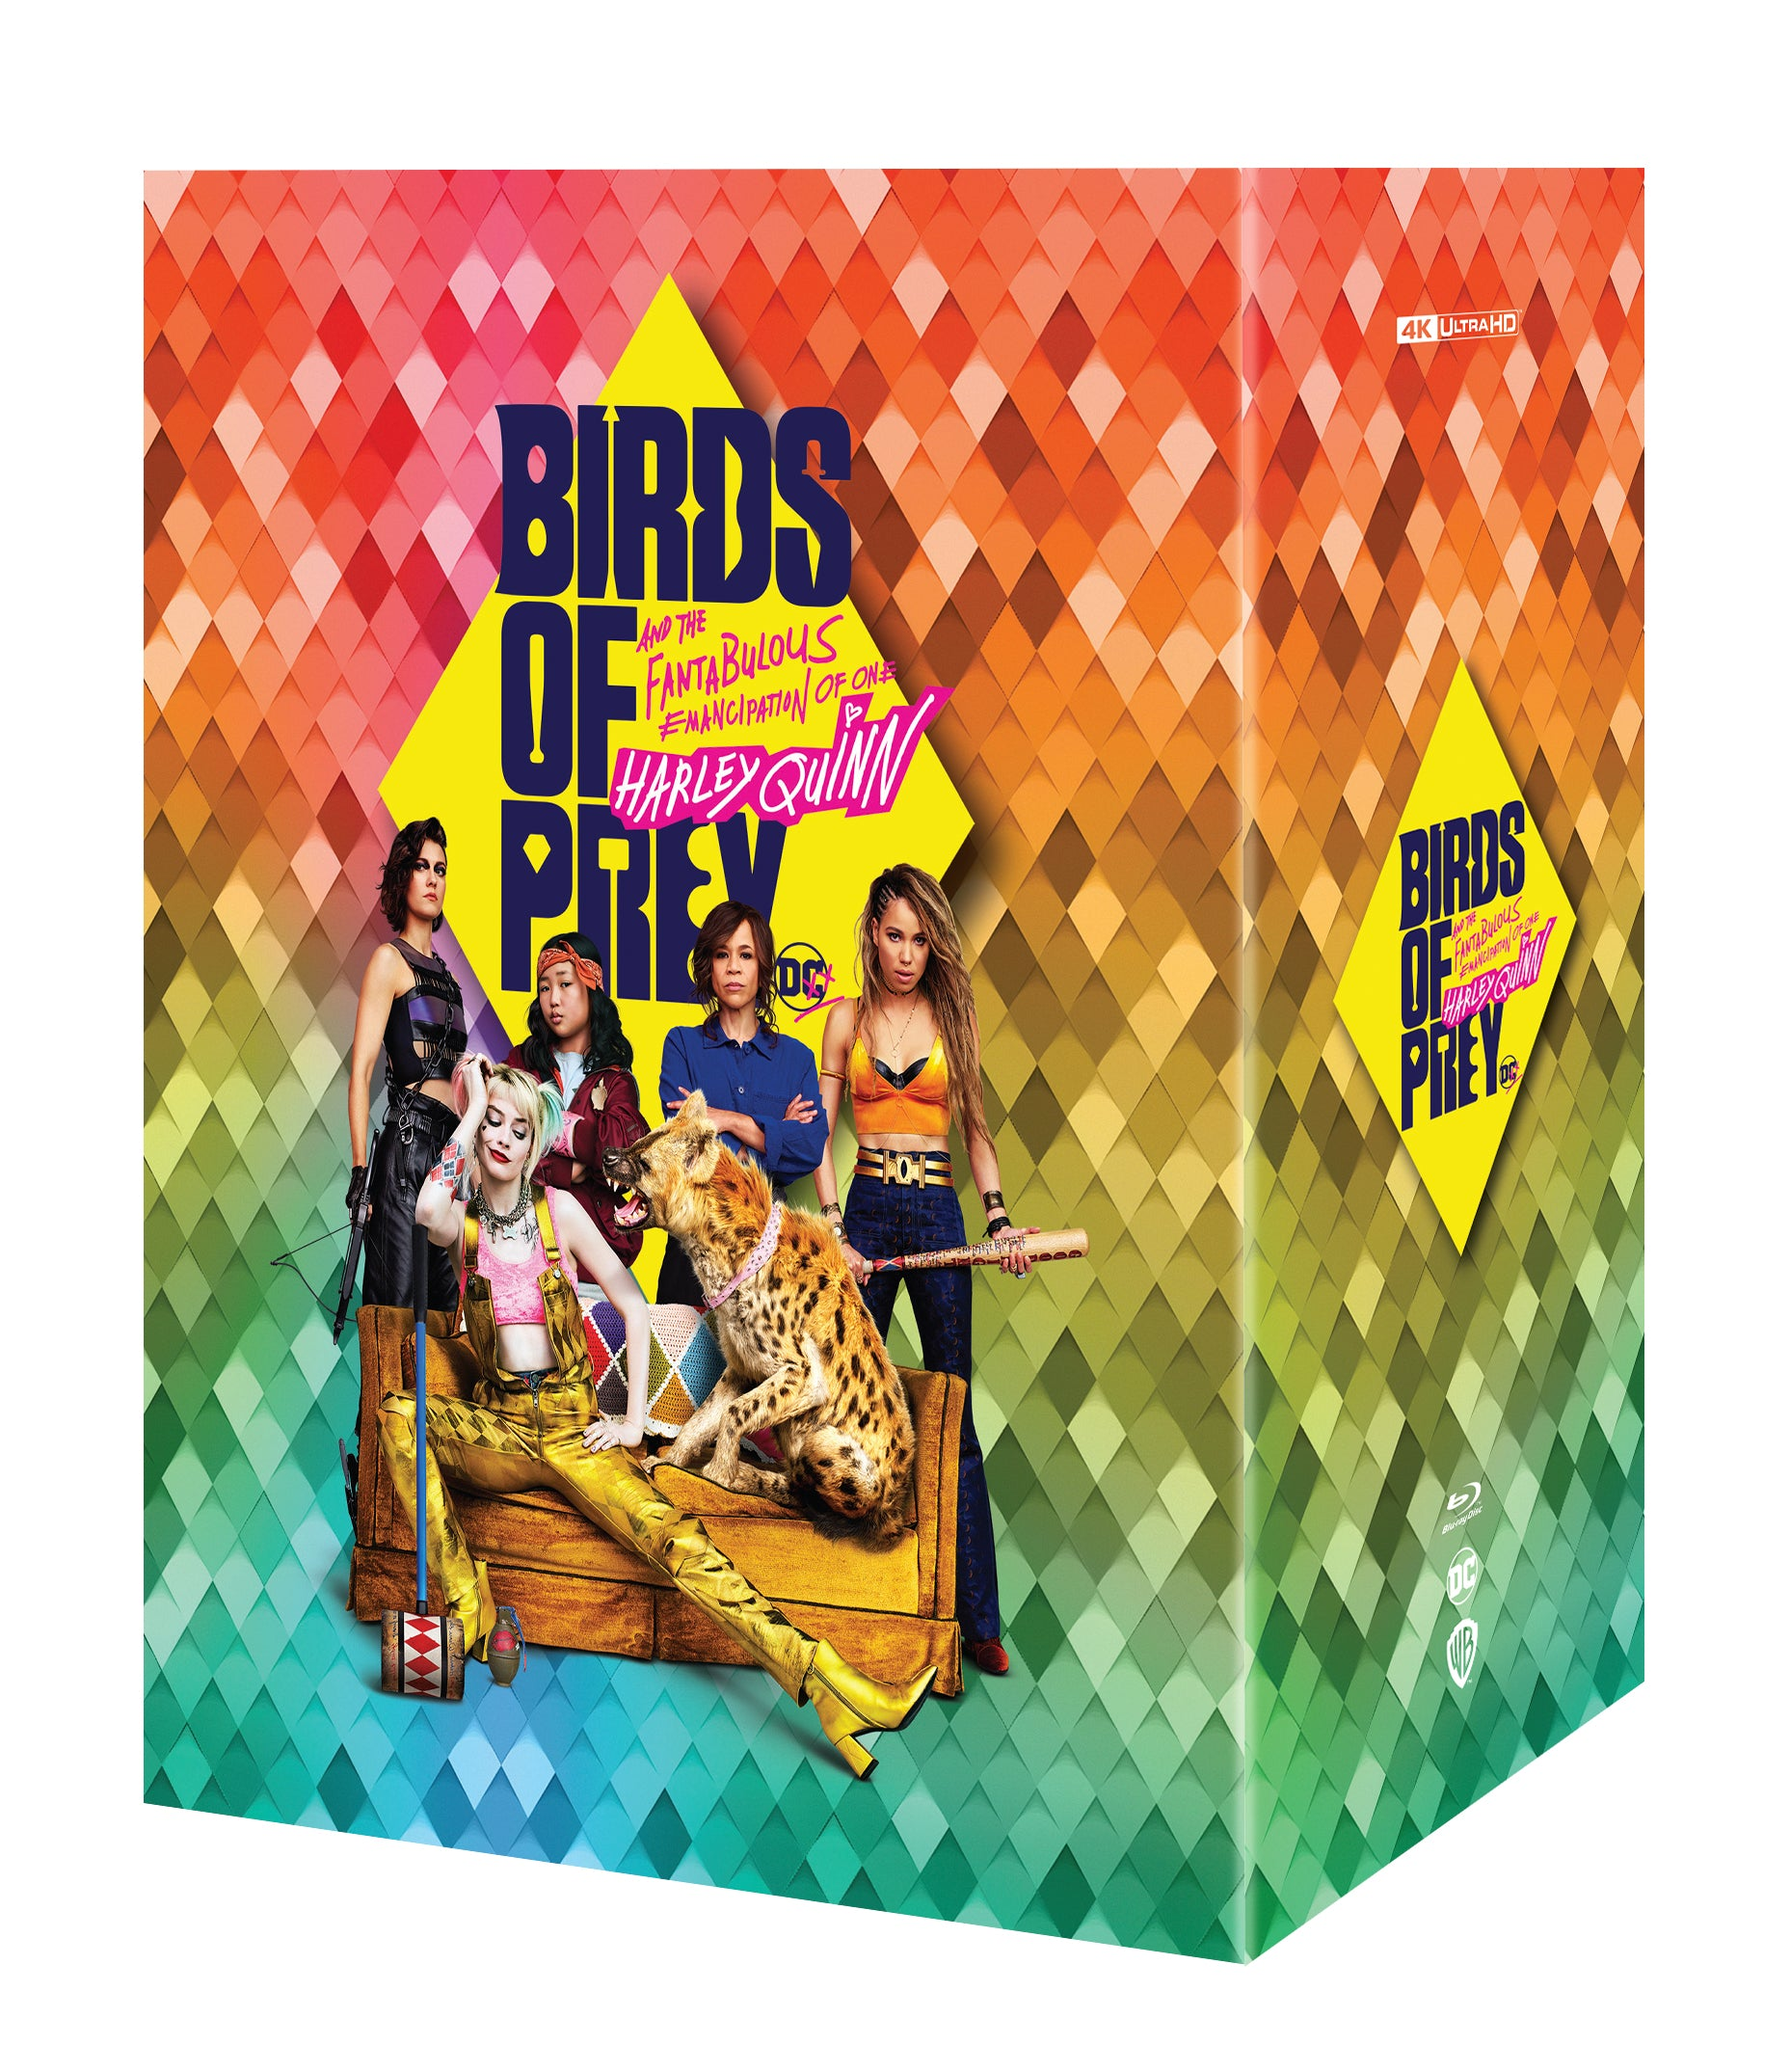 [ME#30] Birds of Prey Steelbook (One Click)